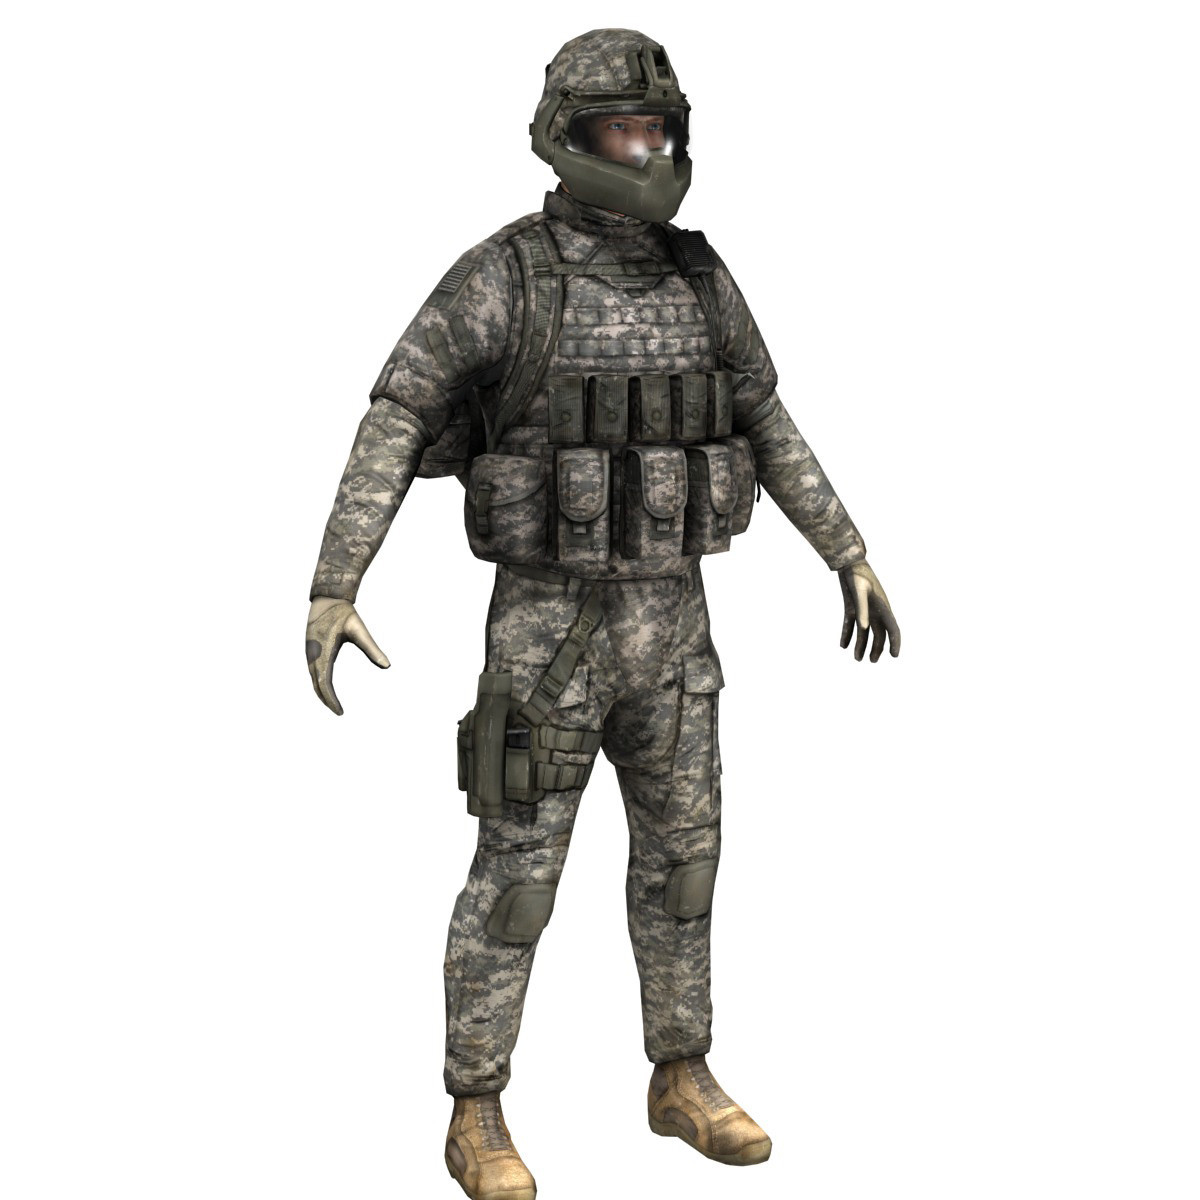 Modern US Soldier-lowpoly